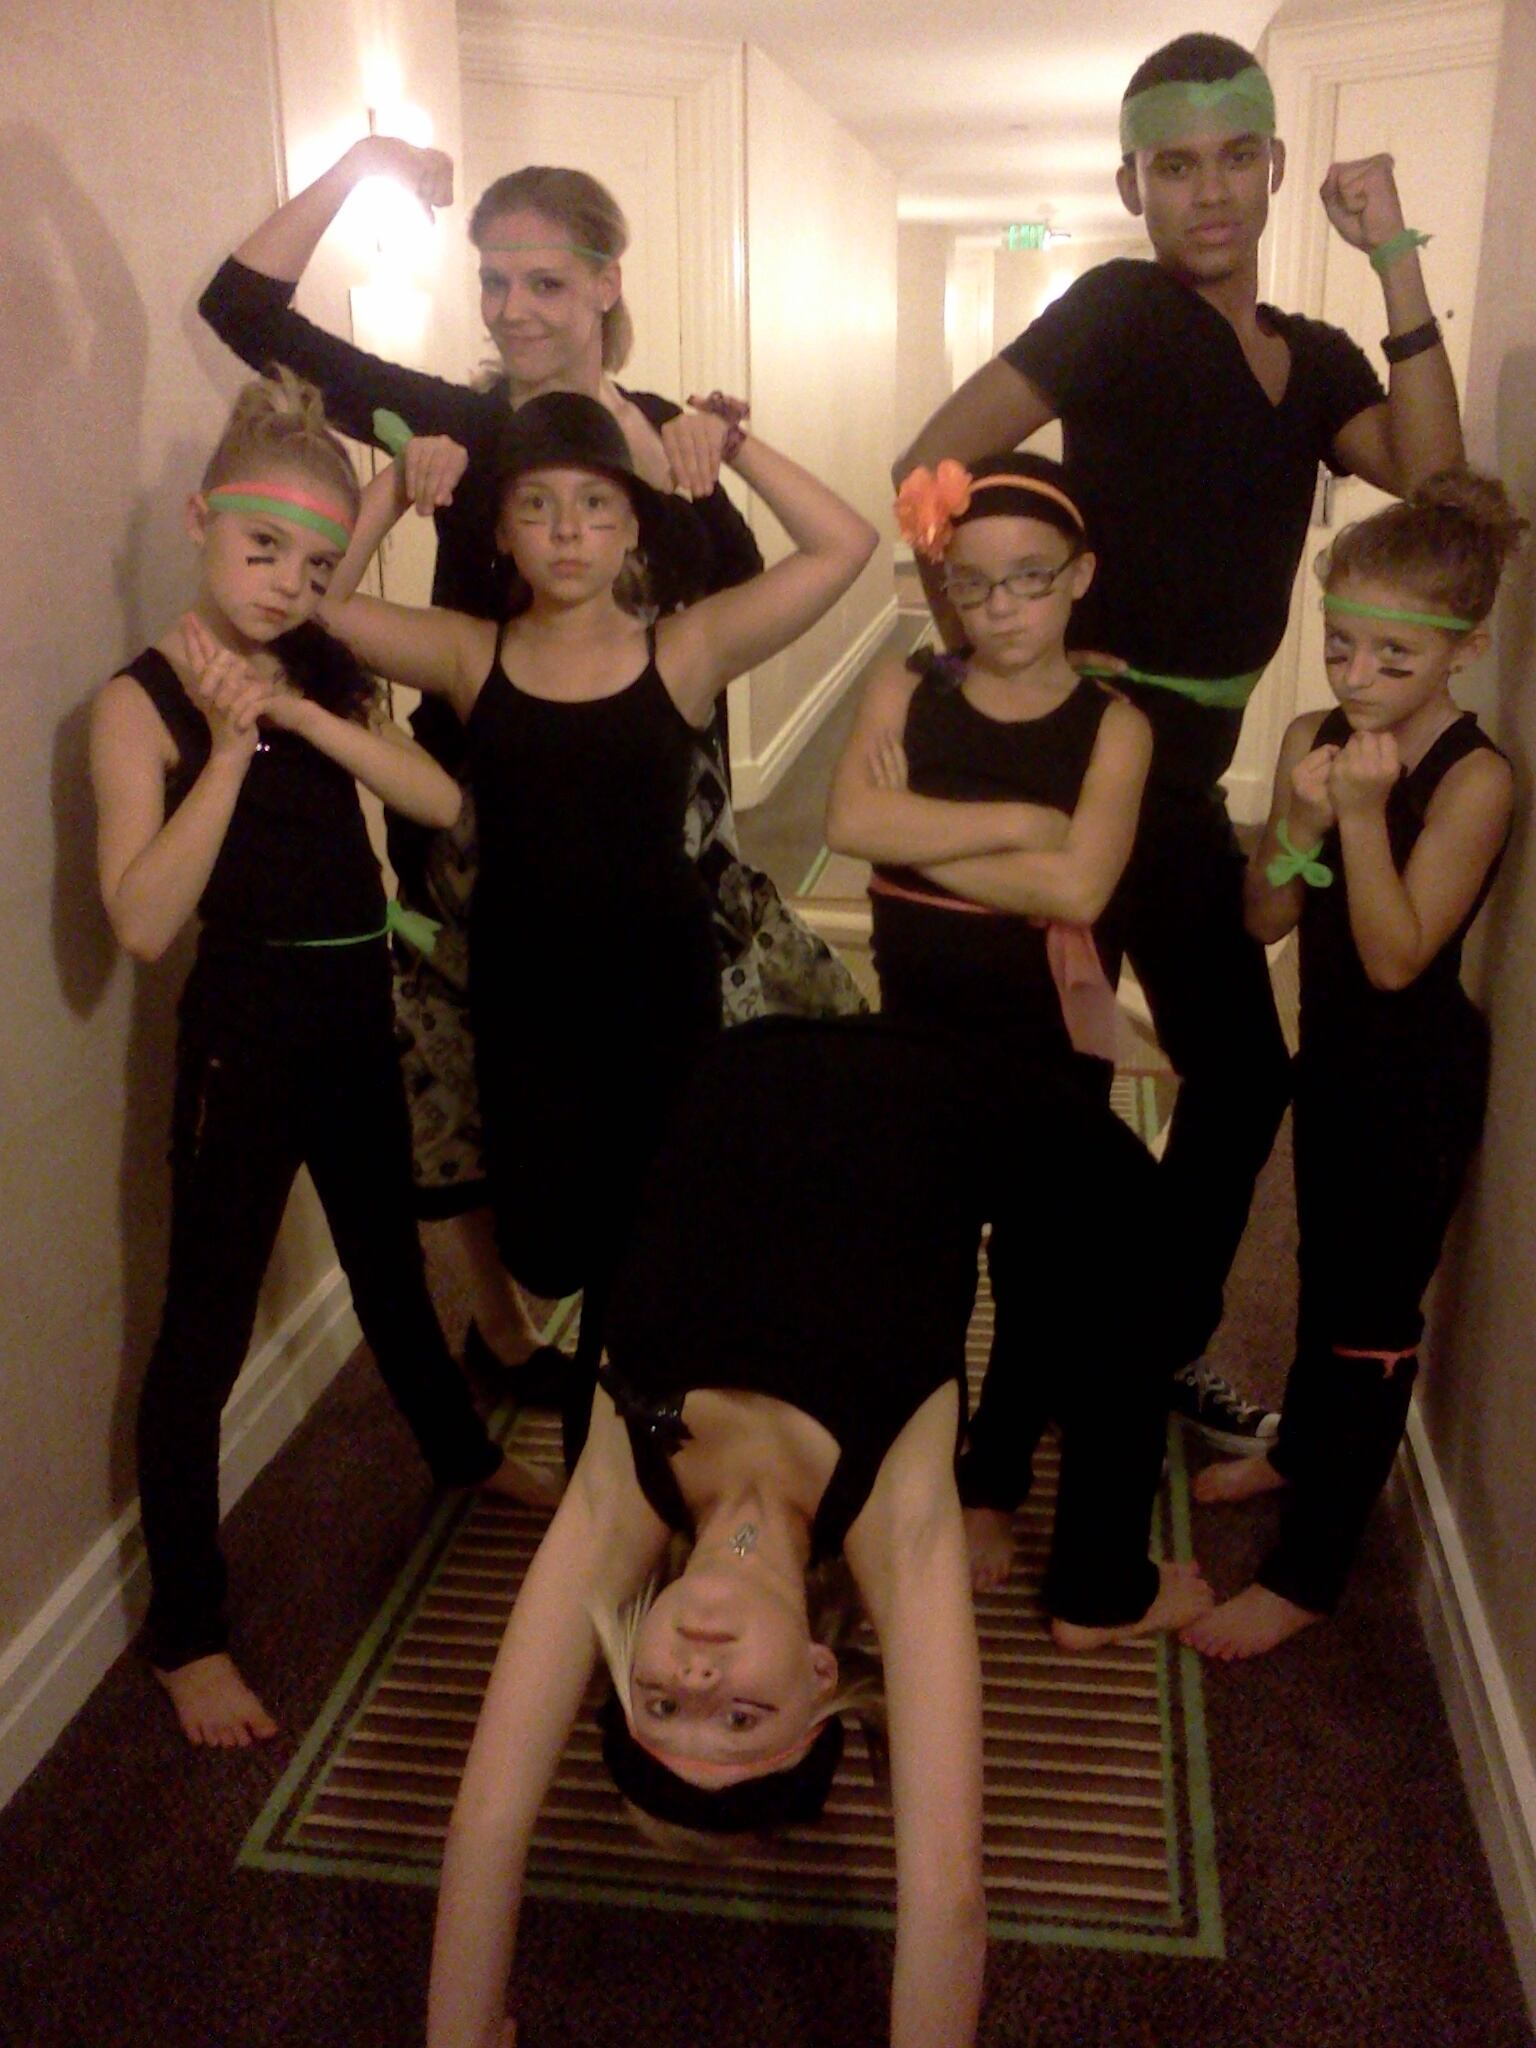 anna playing ninja with agt friends